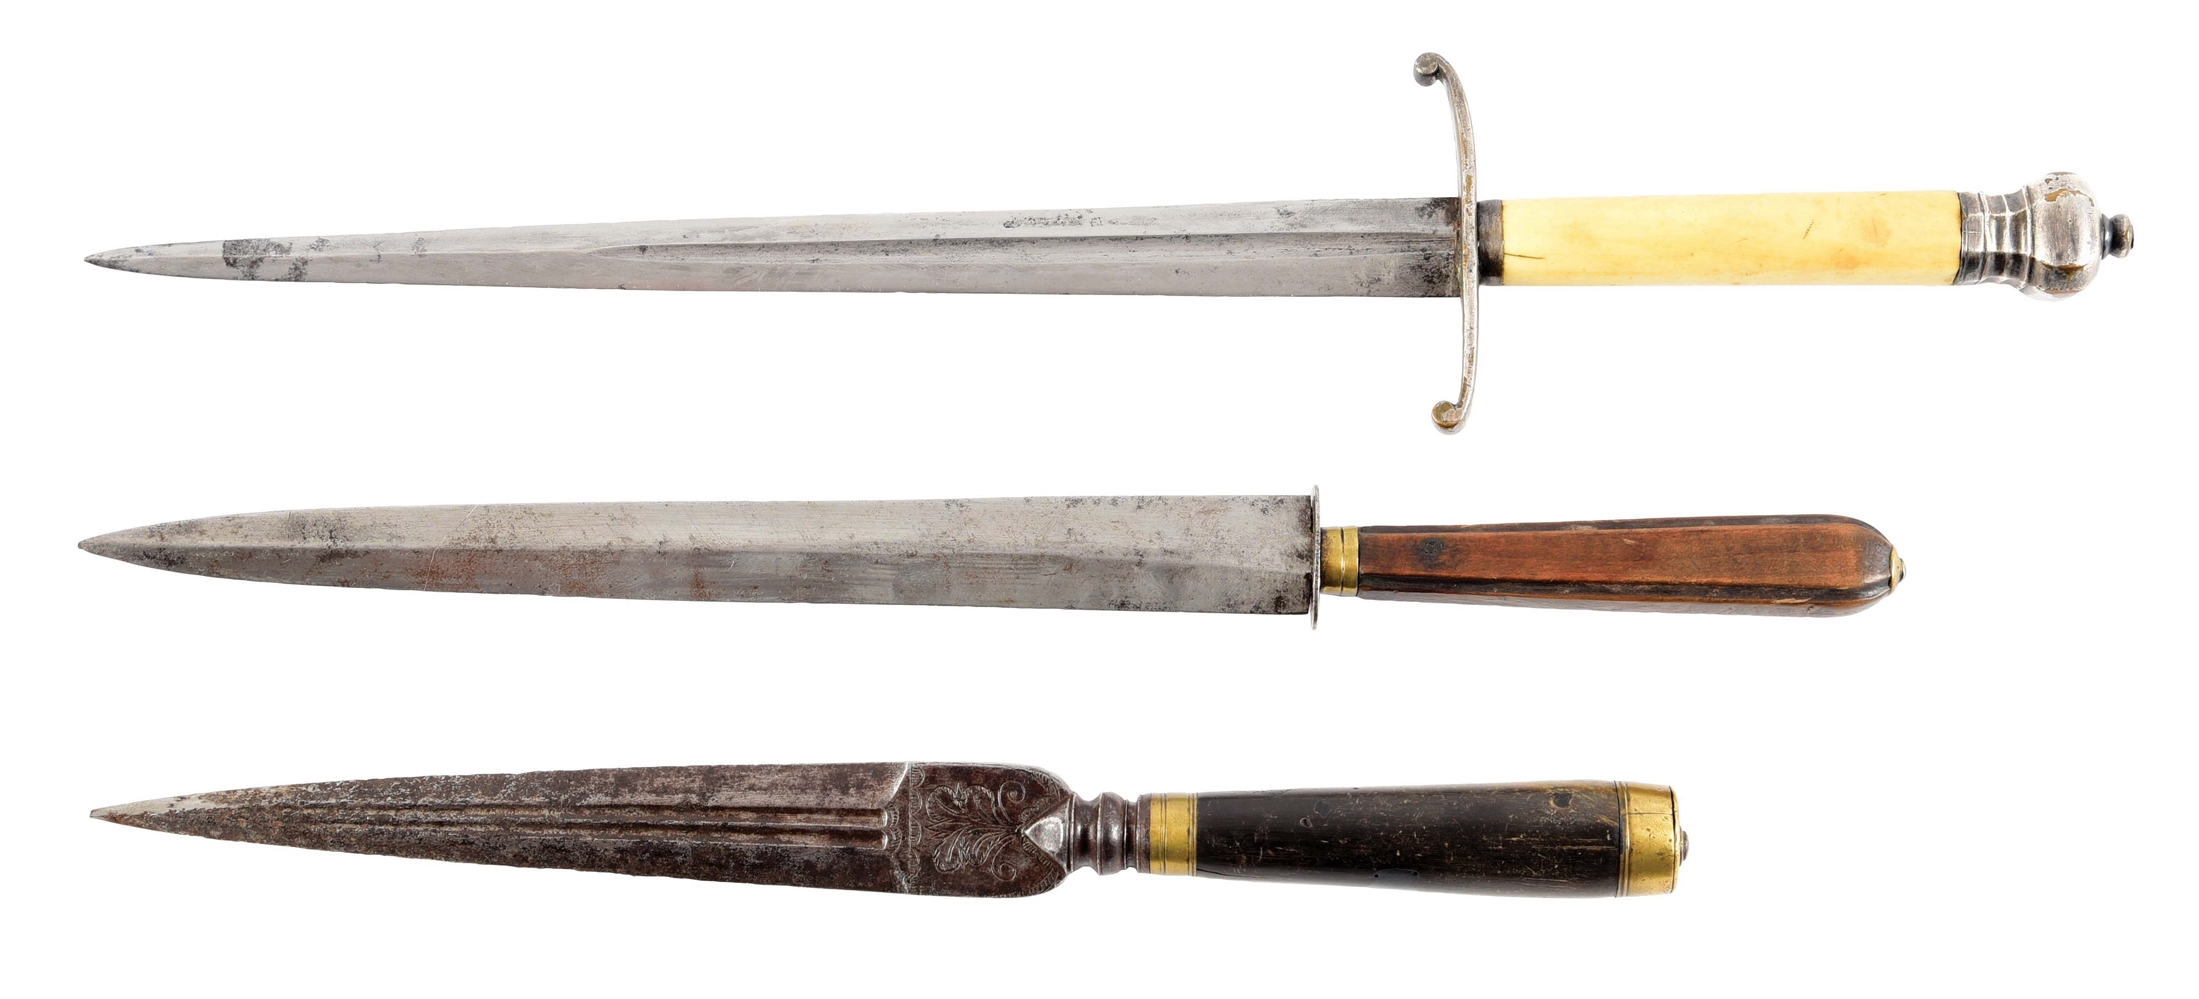 LOT OF 3: 18TH CENTURY DIRKS OR DAGGERS.